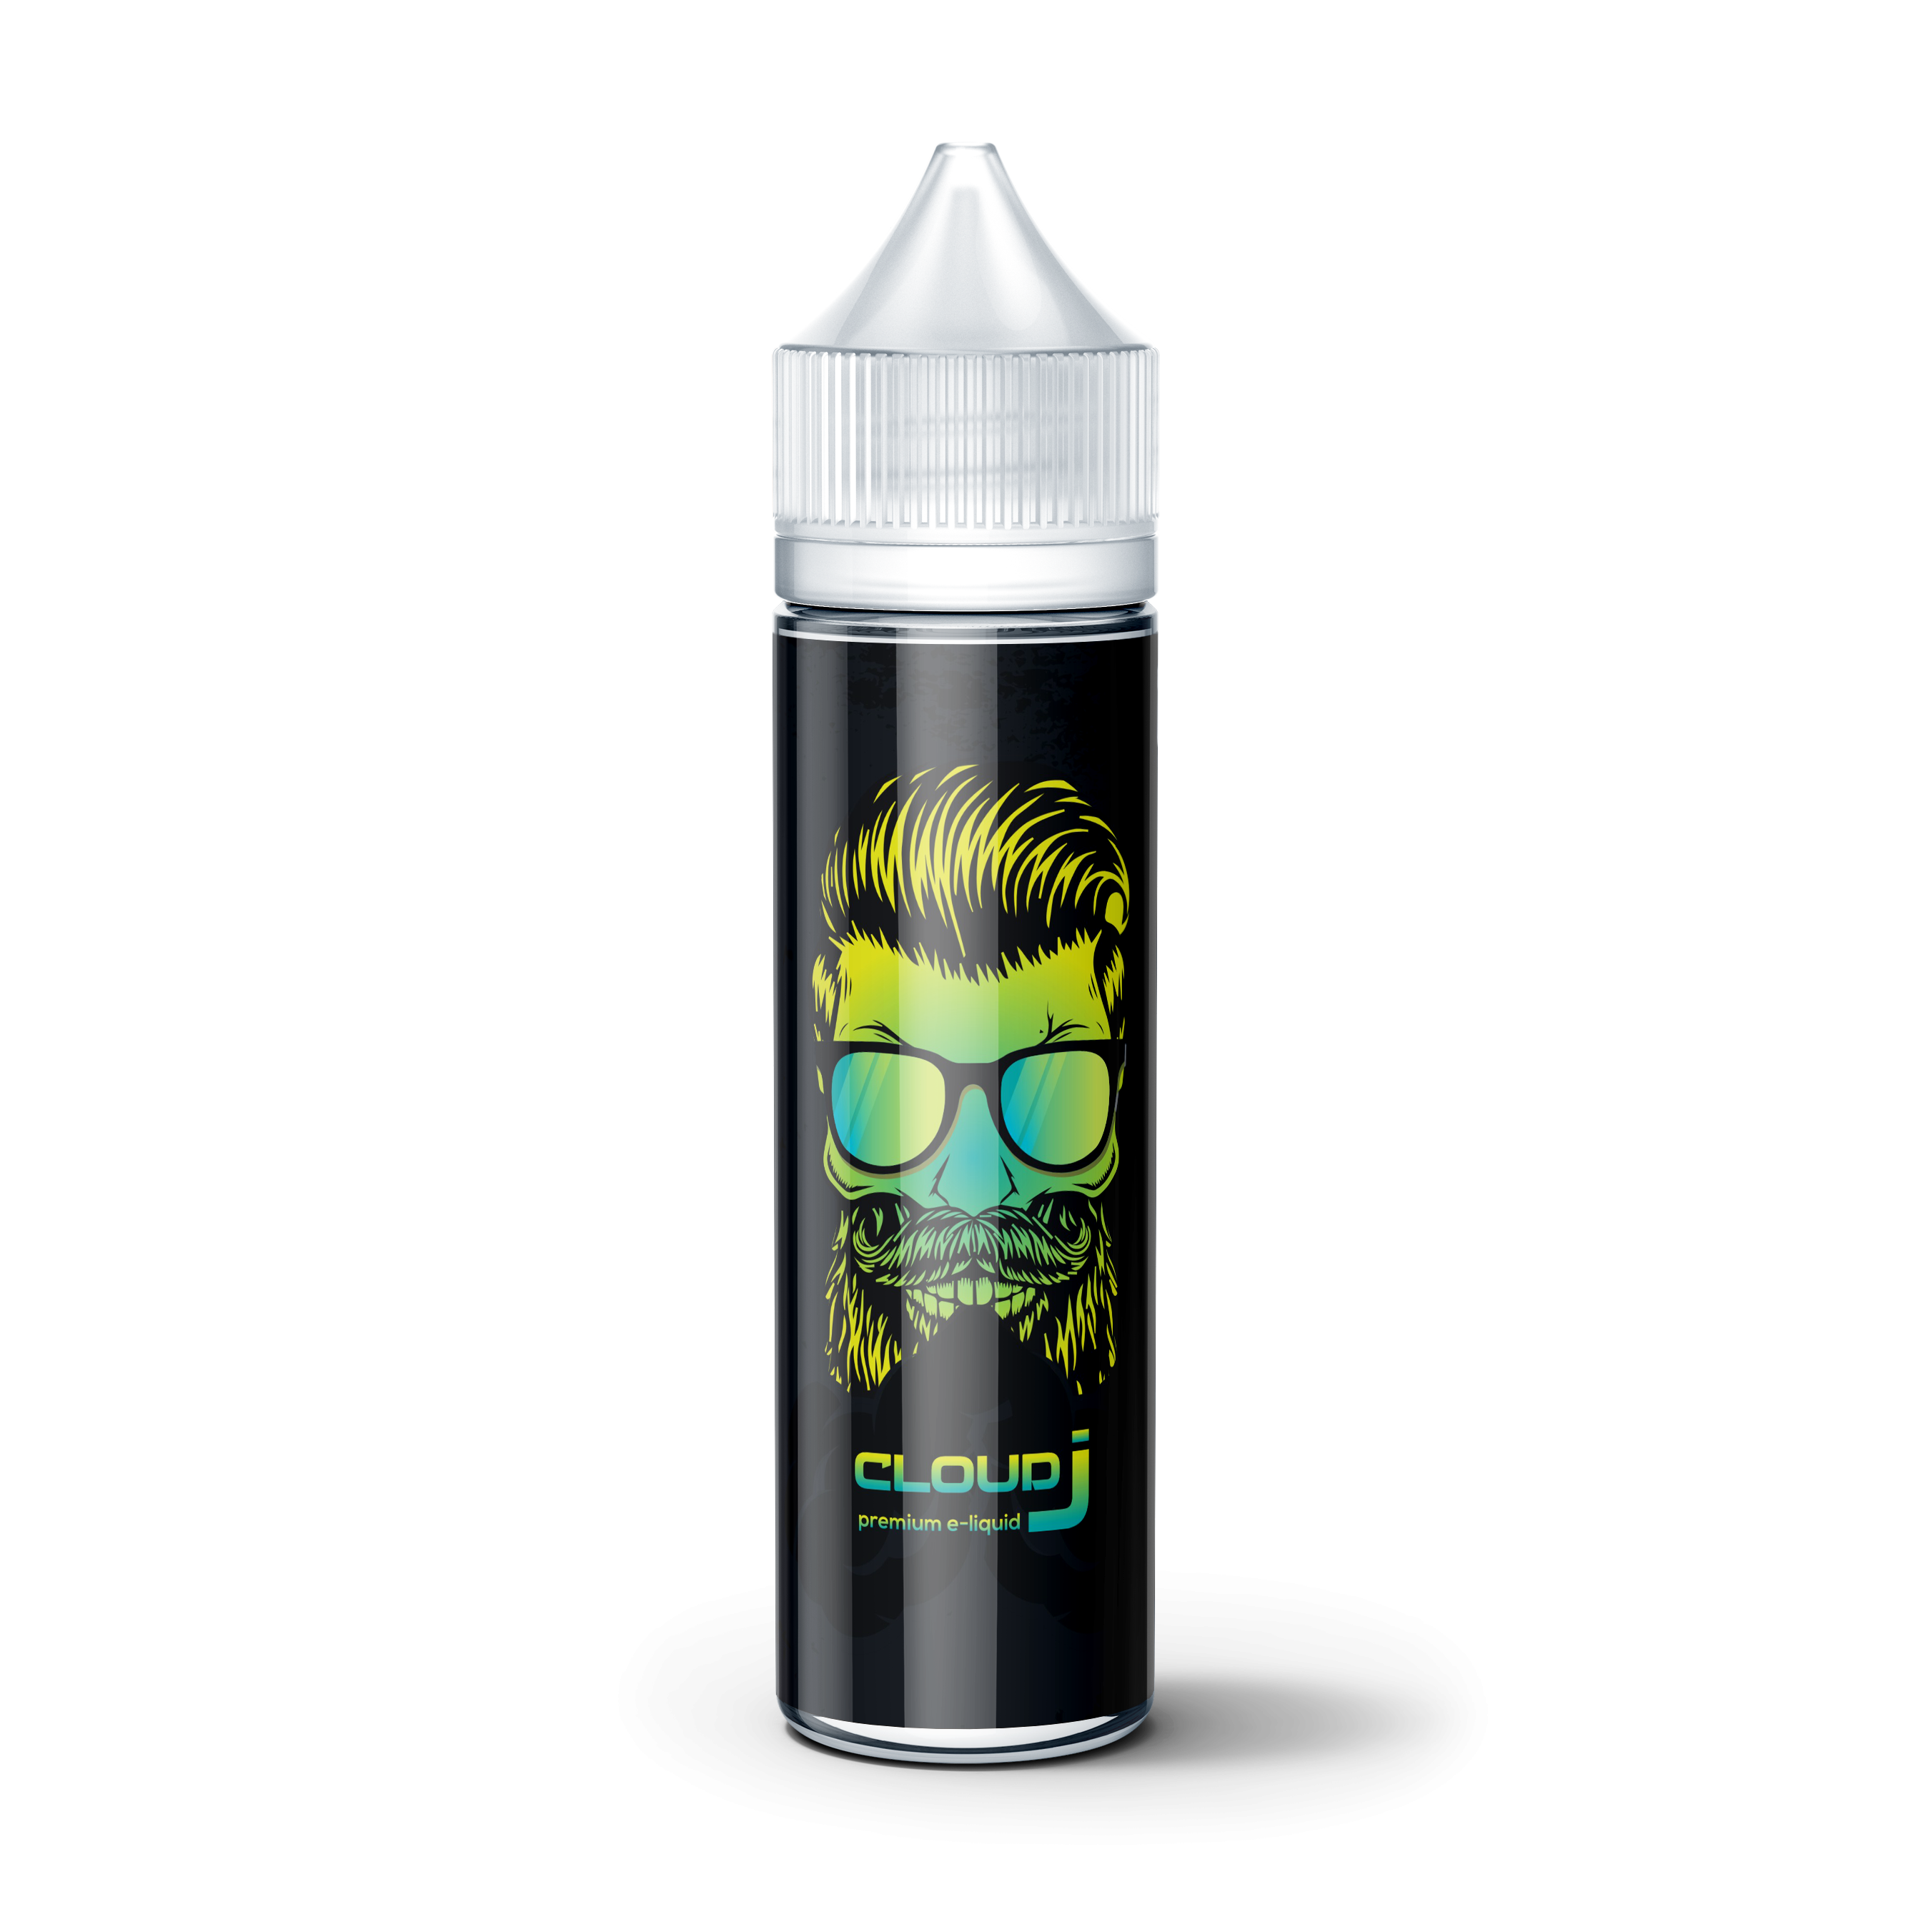 TOPICAL SUNSET 3.0 DOUBLER 60ml Ejuice